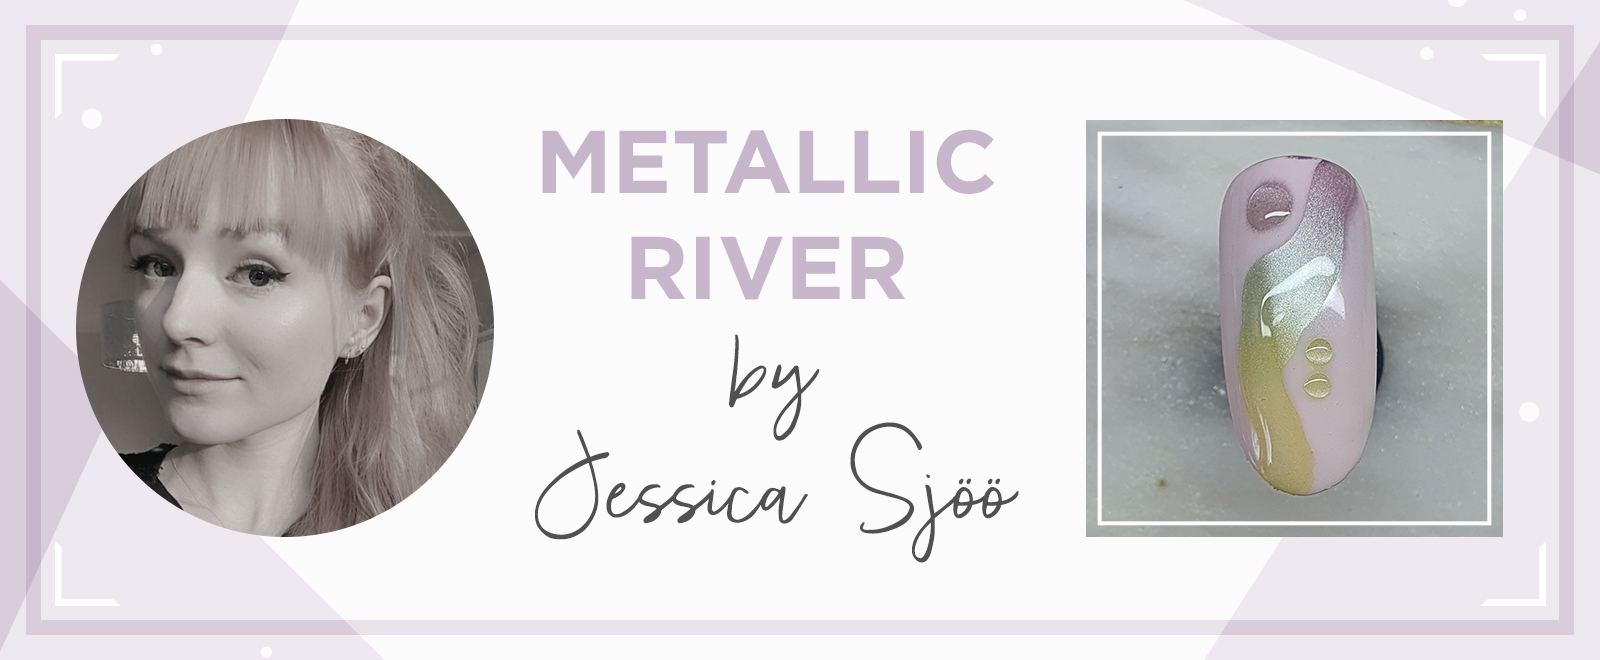 SBS_header_template_1600x660_metallic-river_Jessica-Sjöö